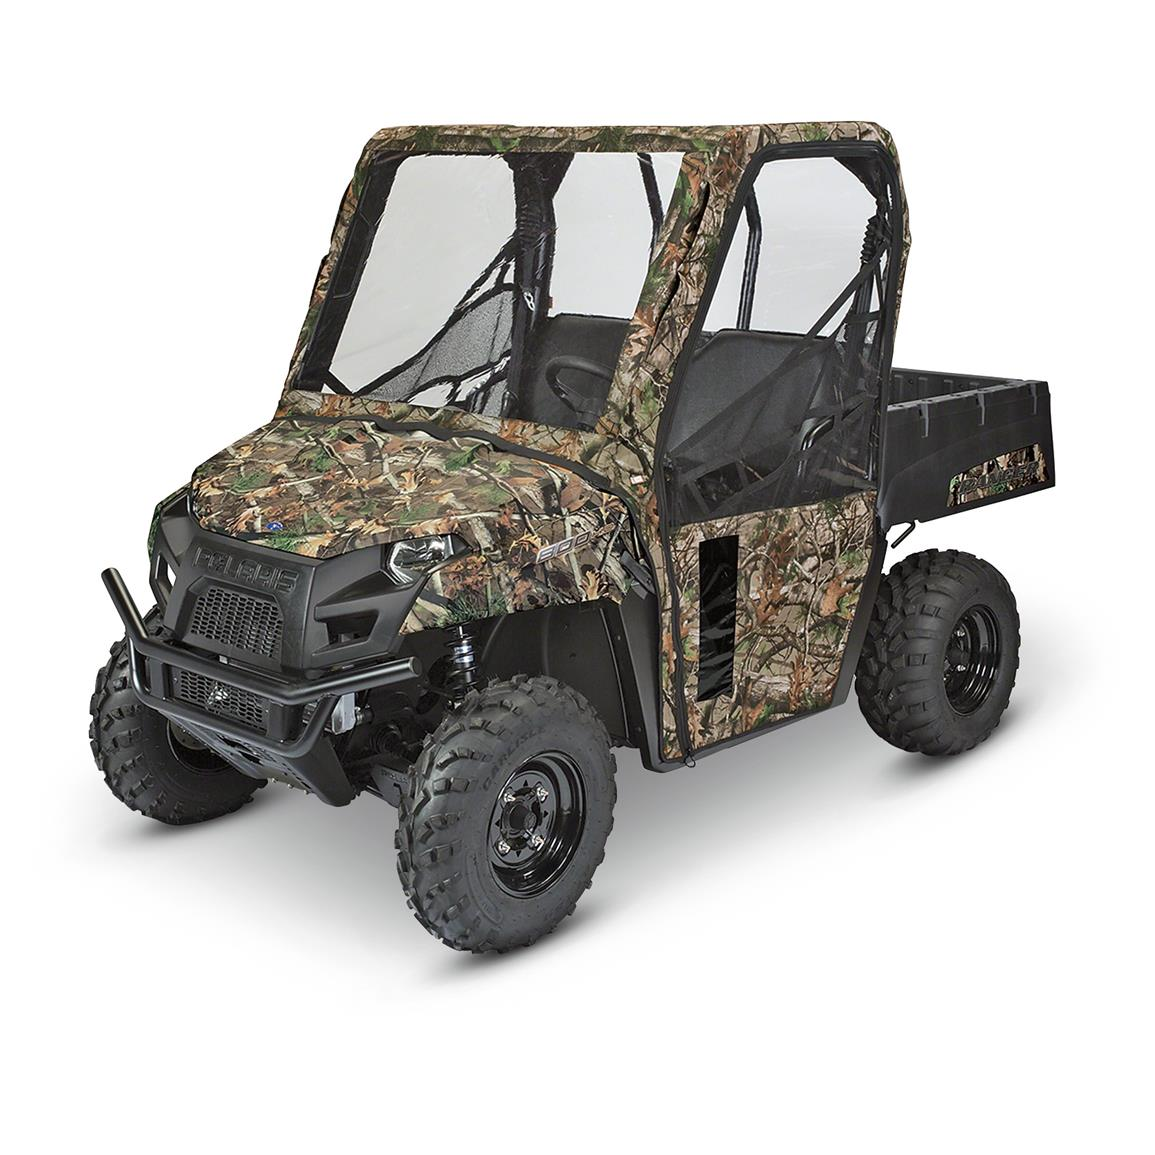 Quad Gear UTV Cab Enclosure, Kawasaki Mule 4000 Series, Next Camo